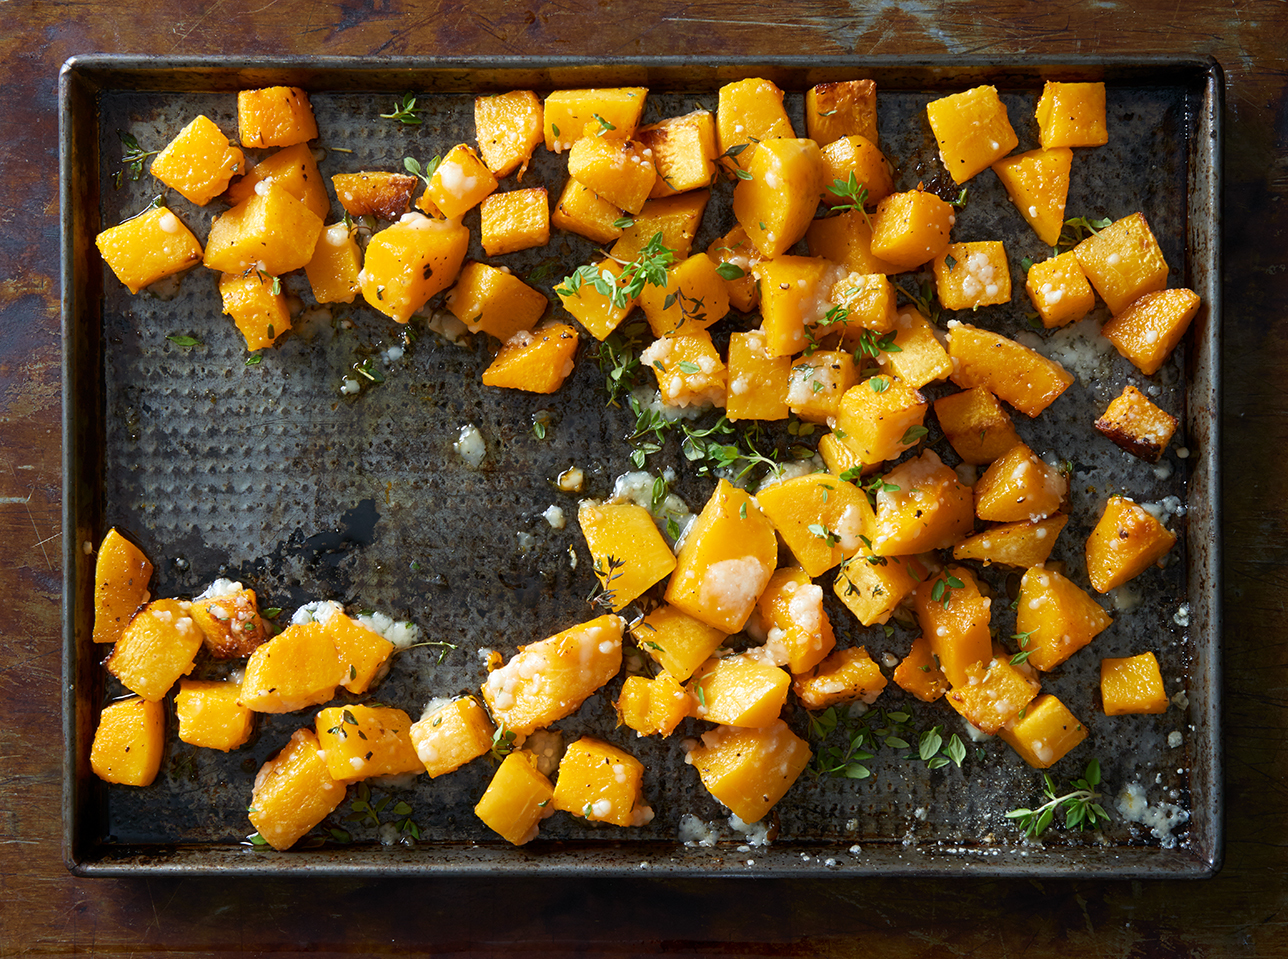 The Top 3 Ways to Prepare Butternut Squash